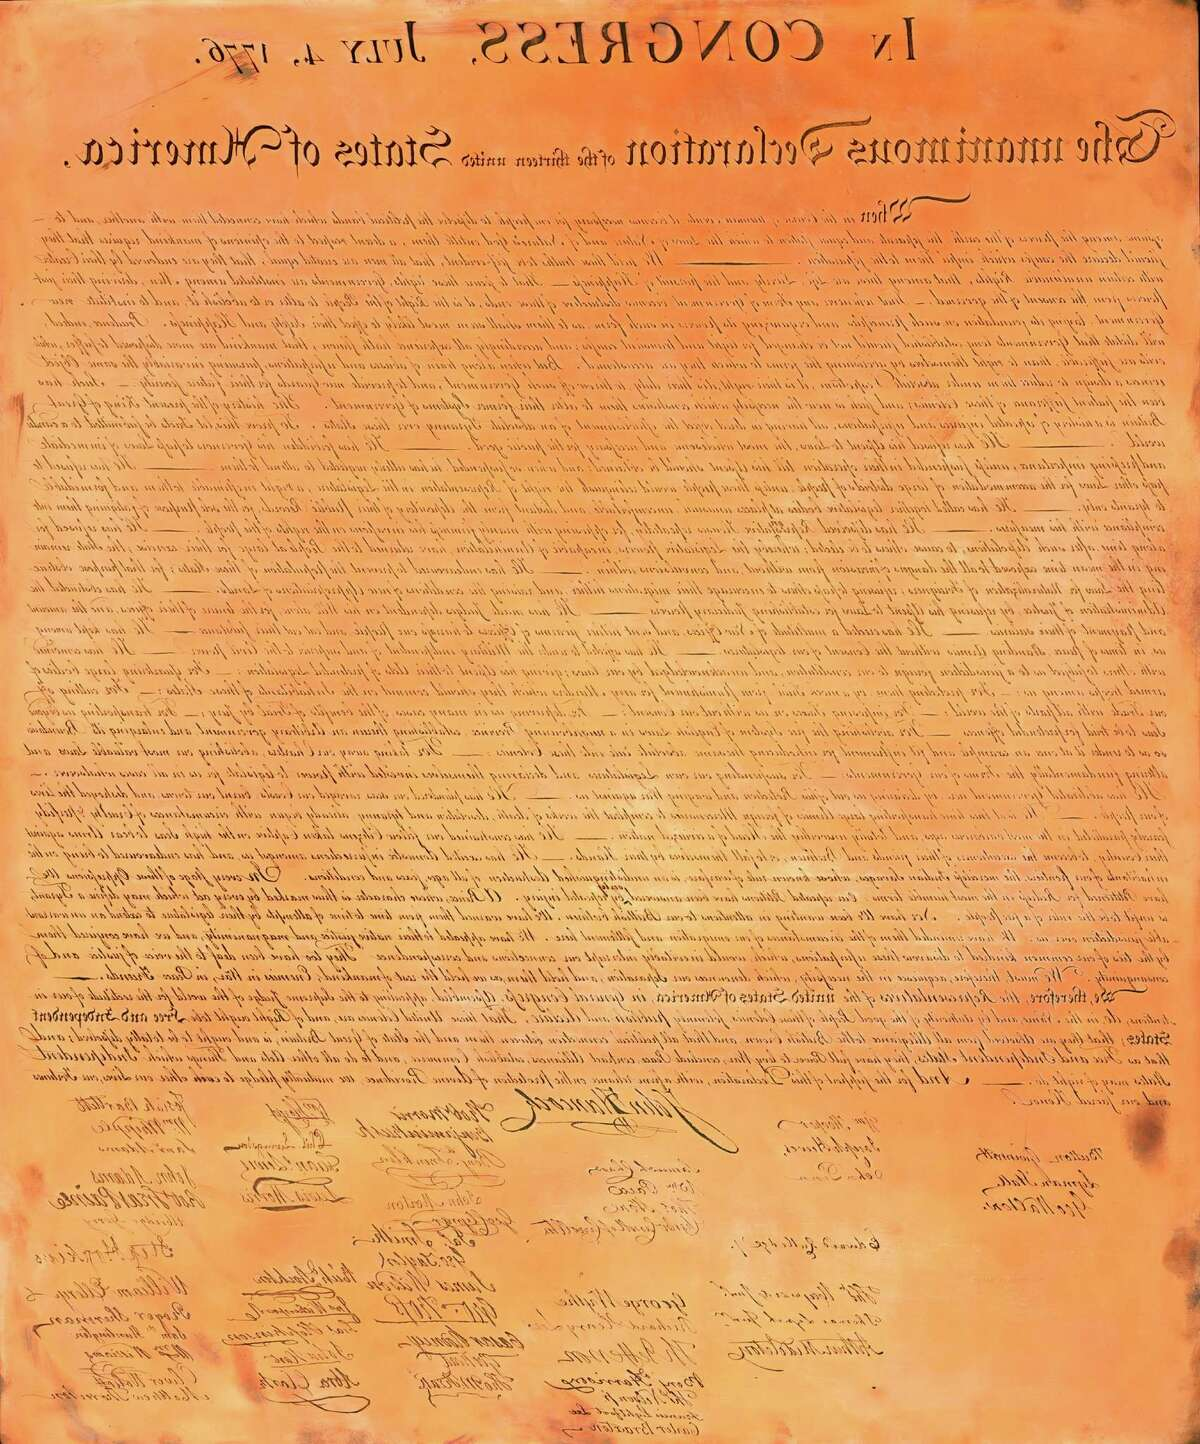 The Declaration of Independence on a copper plate facsimile carved by William Stone, in an undated handout image. The original Declaration has faded to near-illegibility, but Stone's engraved facsimile has been reproduced. (National Archives and Records Administration via The New York Times) -- EDITORIAL USE ONLY